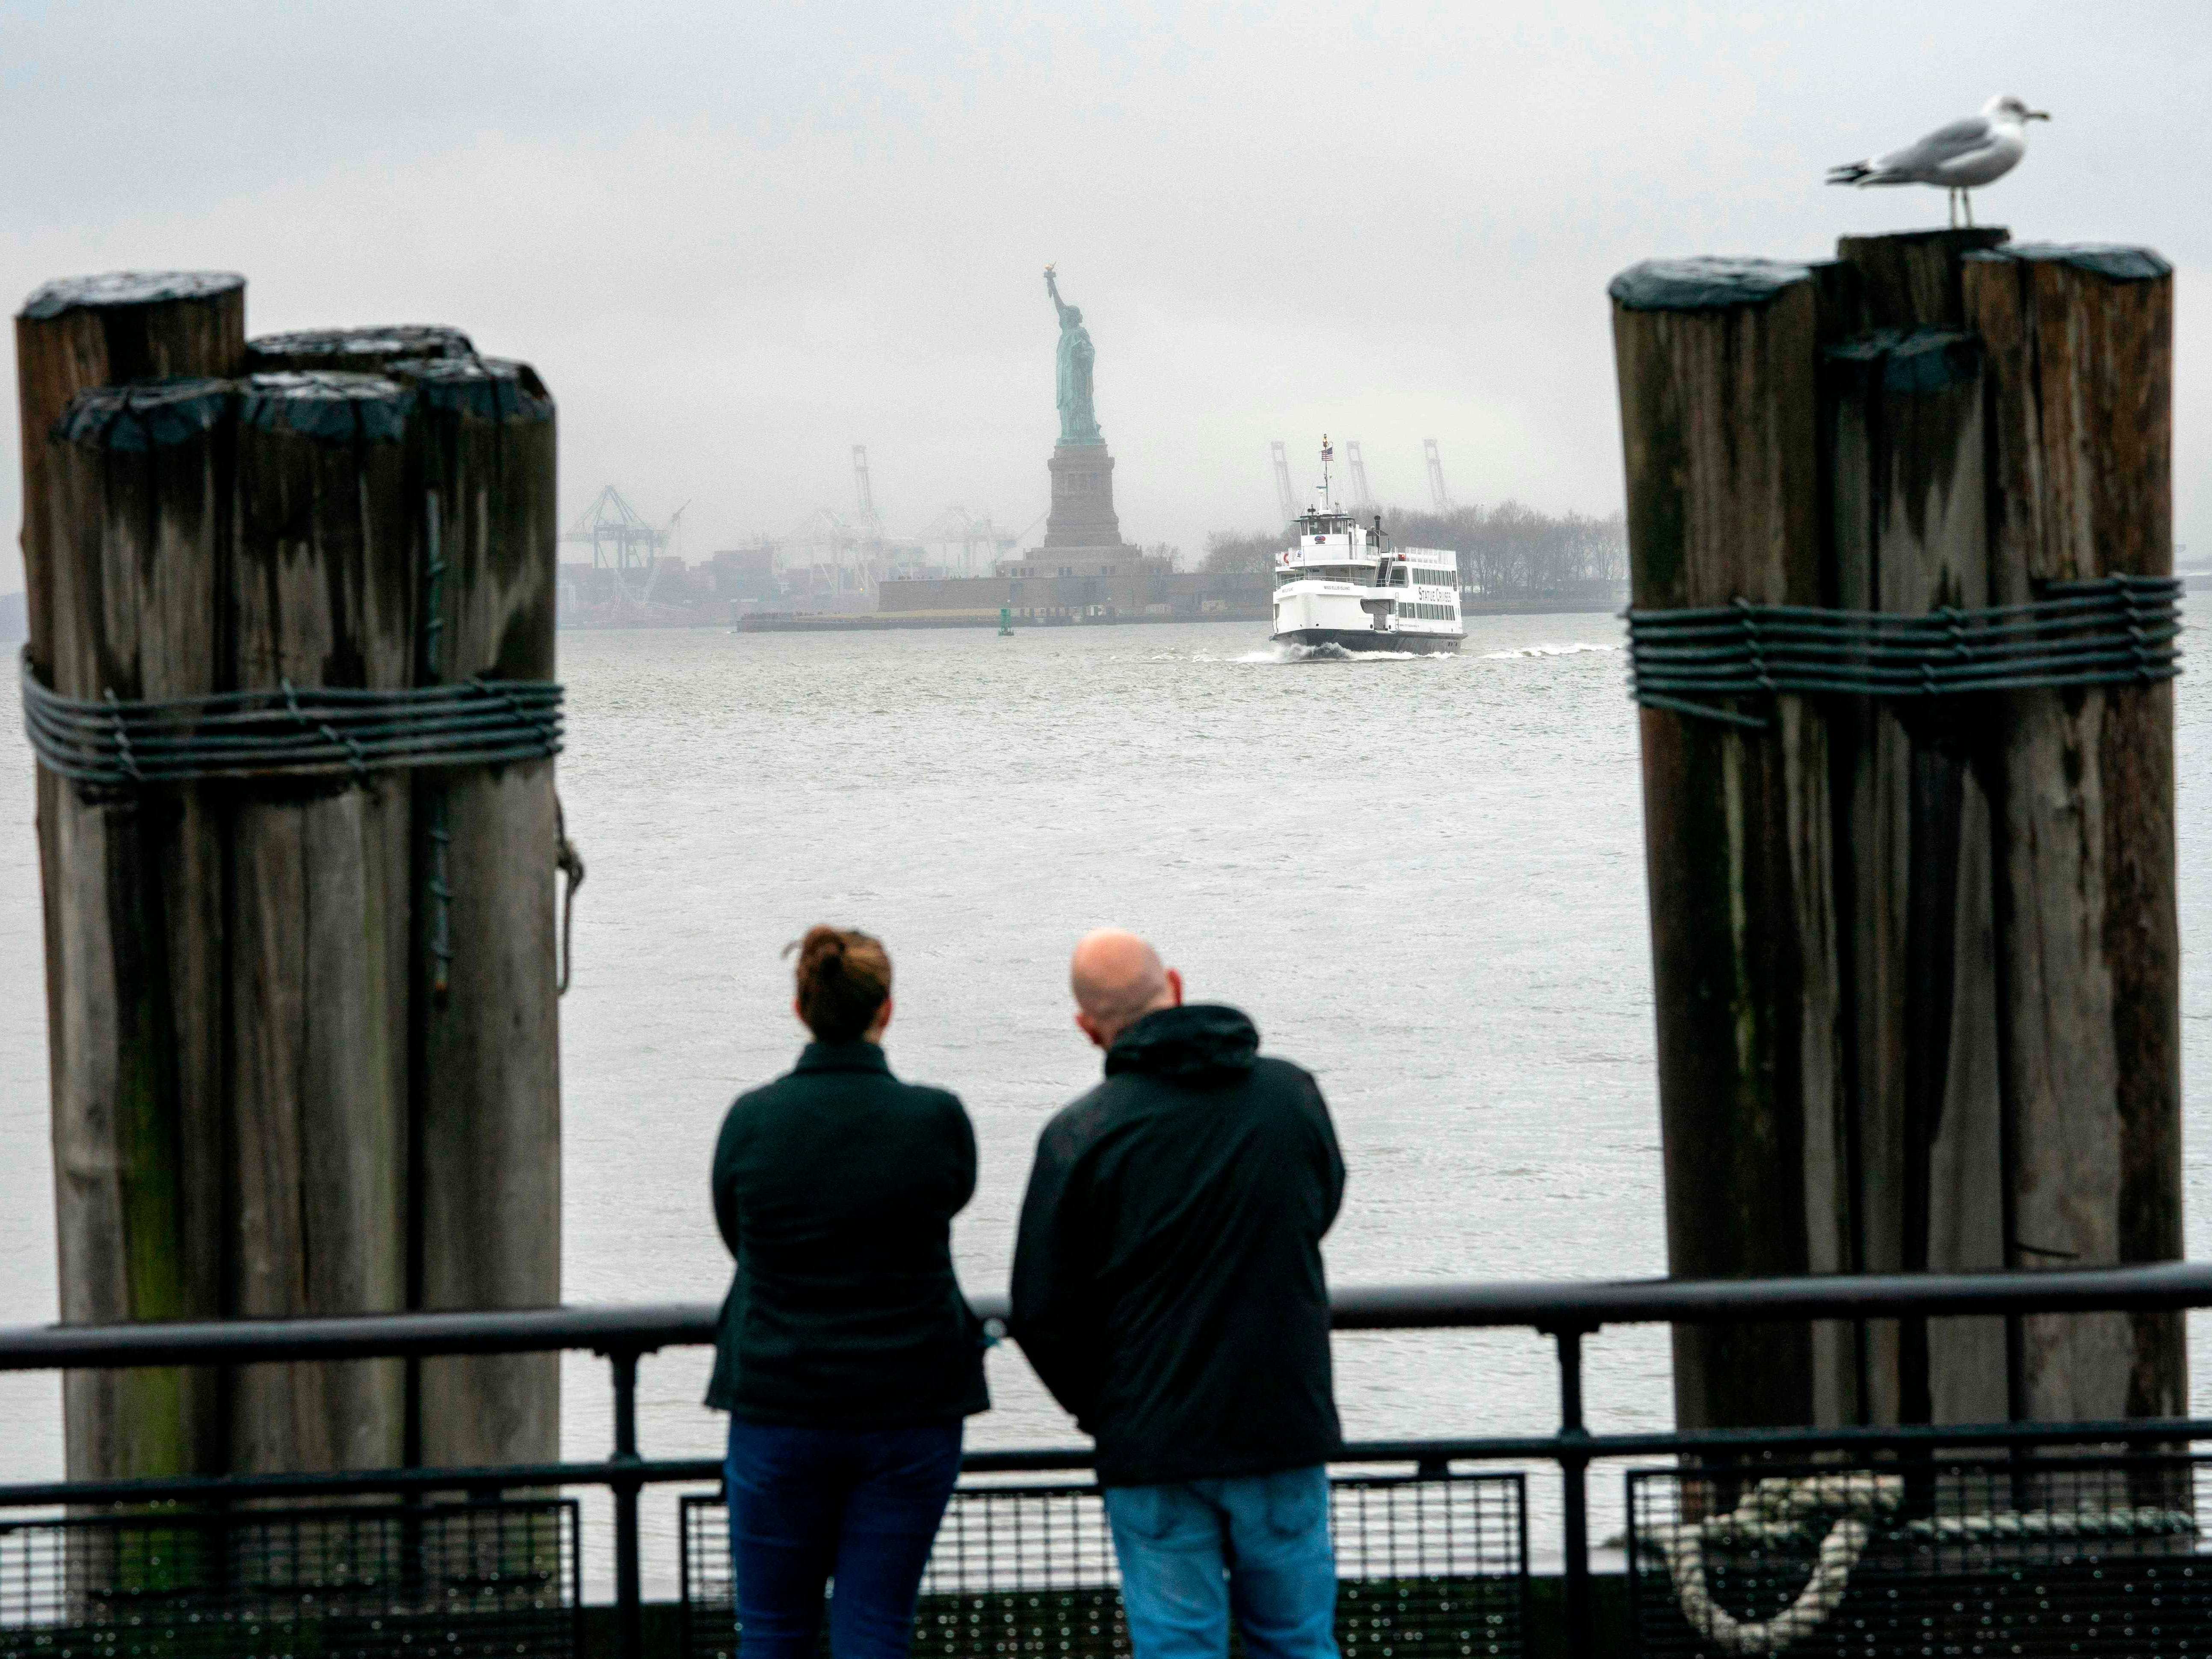 People watch as the Statue of Liberty and Ellis Island ferry transports passengers on Jan. 5, 2019, in New York, as the government shutdown enters its third week. New York state funds are being used to keep the attractions open during the shutdown which has affected National Parks.